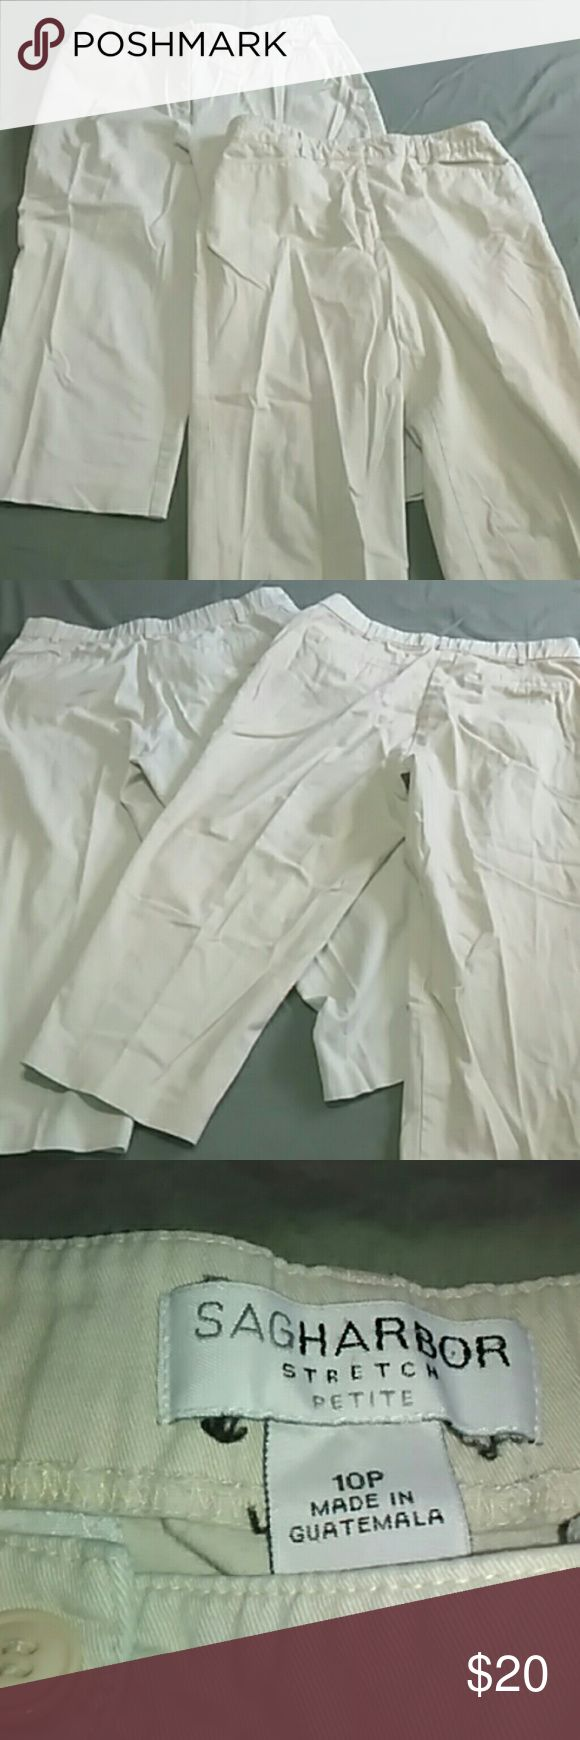 Set of 2 Khaki Capri Pants Set of 2 khaki colored capri pants. 1 by Sag Harbor stretch petite size 10 p and made of 97% cotton and 3% spandex. The other Kim Rogers petite size 10 P made of 97% cotton and 3% spandex. Both have a 10 and a half inch rise and a 20 inch inseam. Both have pockets and belt loops. Sag Harbor & Kim Rogers Pants Capris